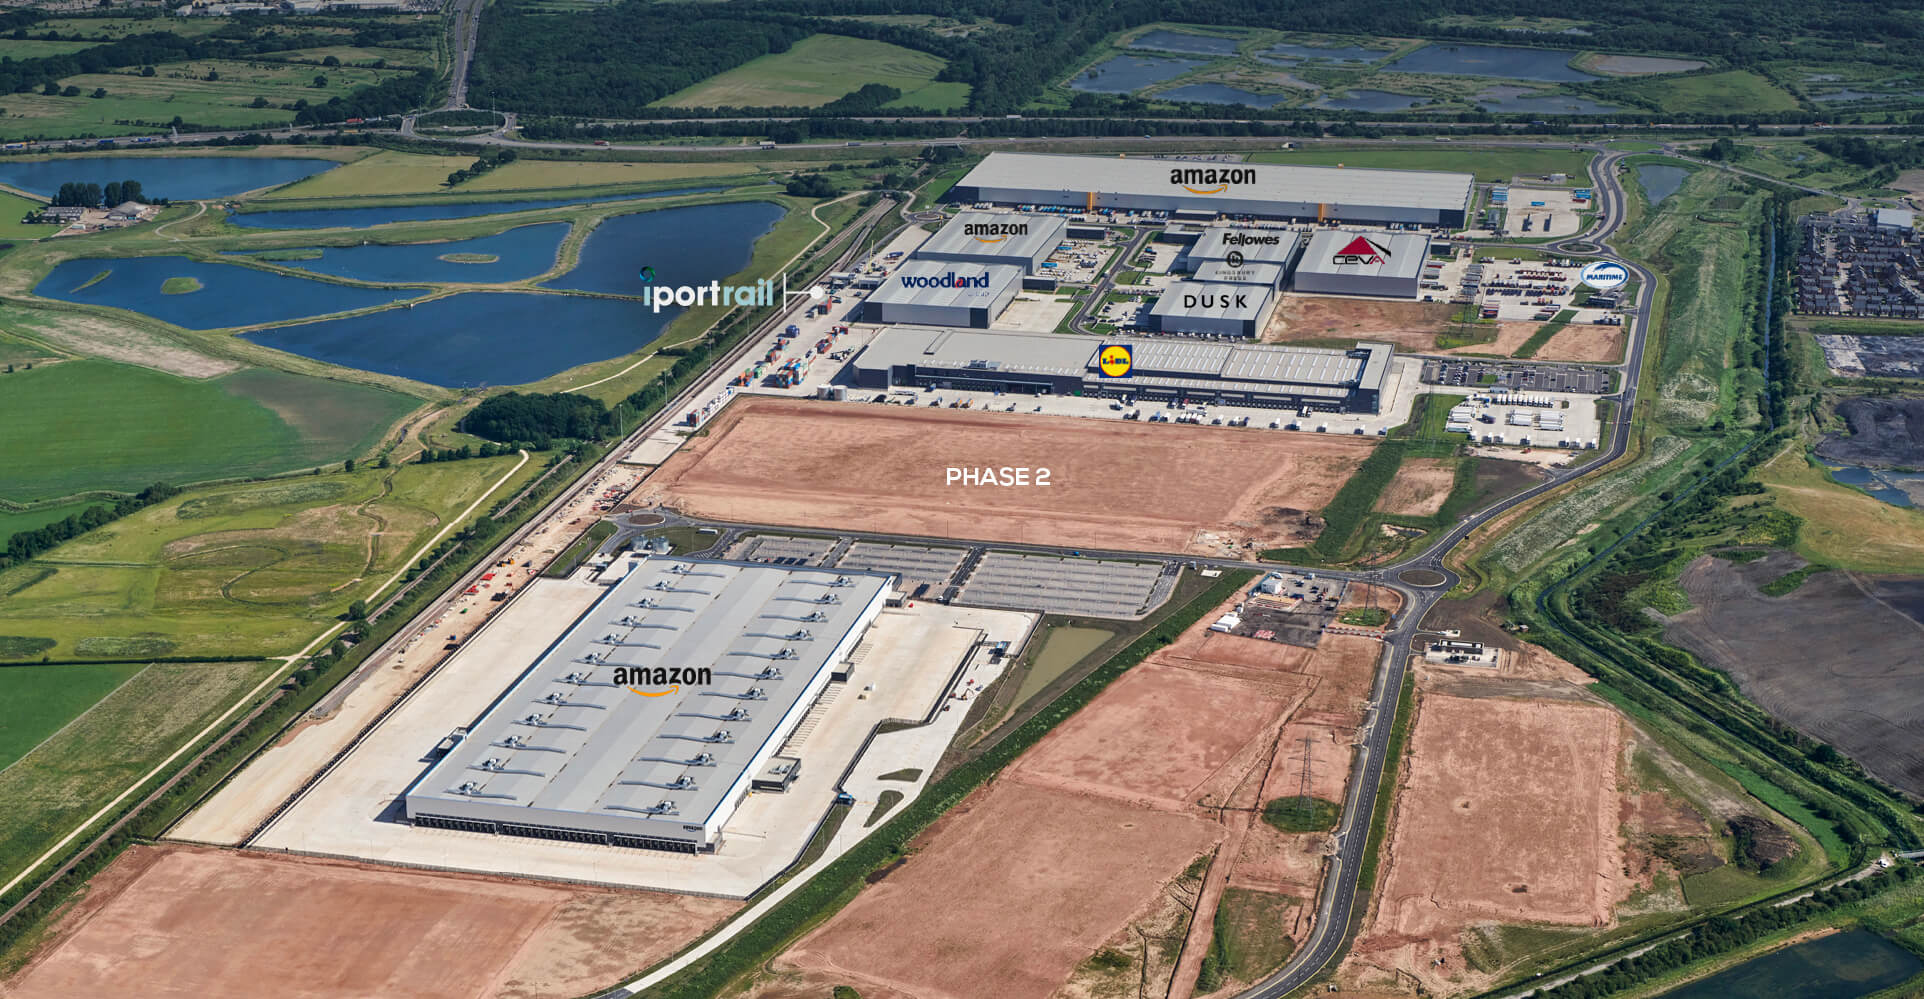 iPortrail Doncaster, Phase 2